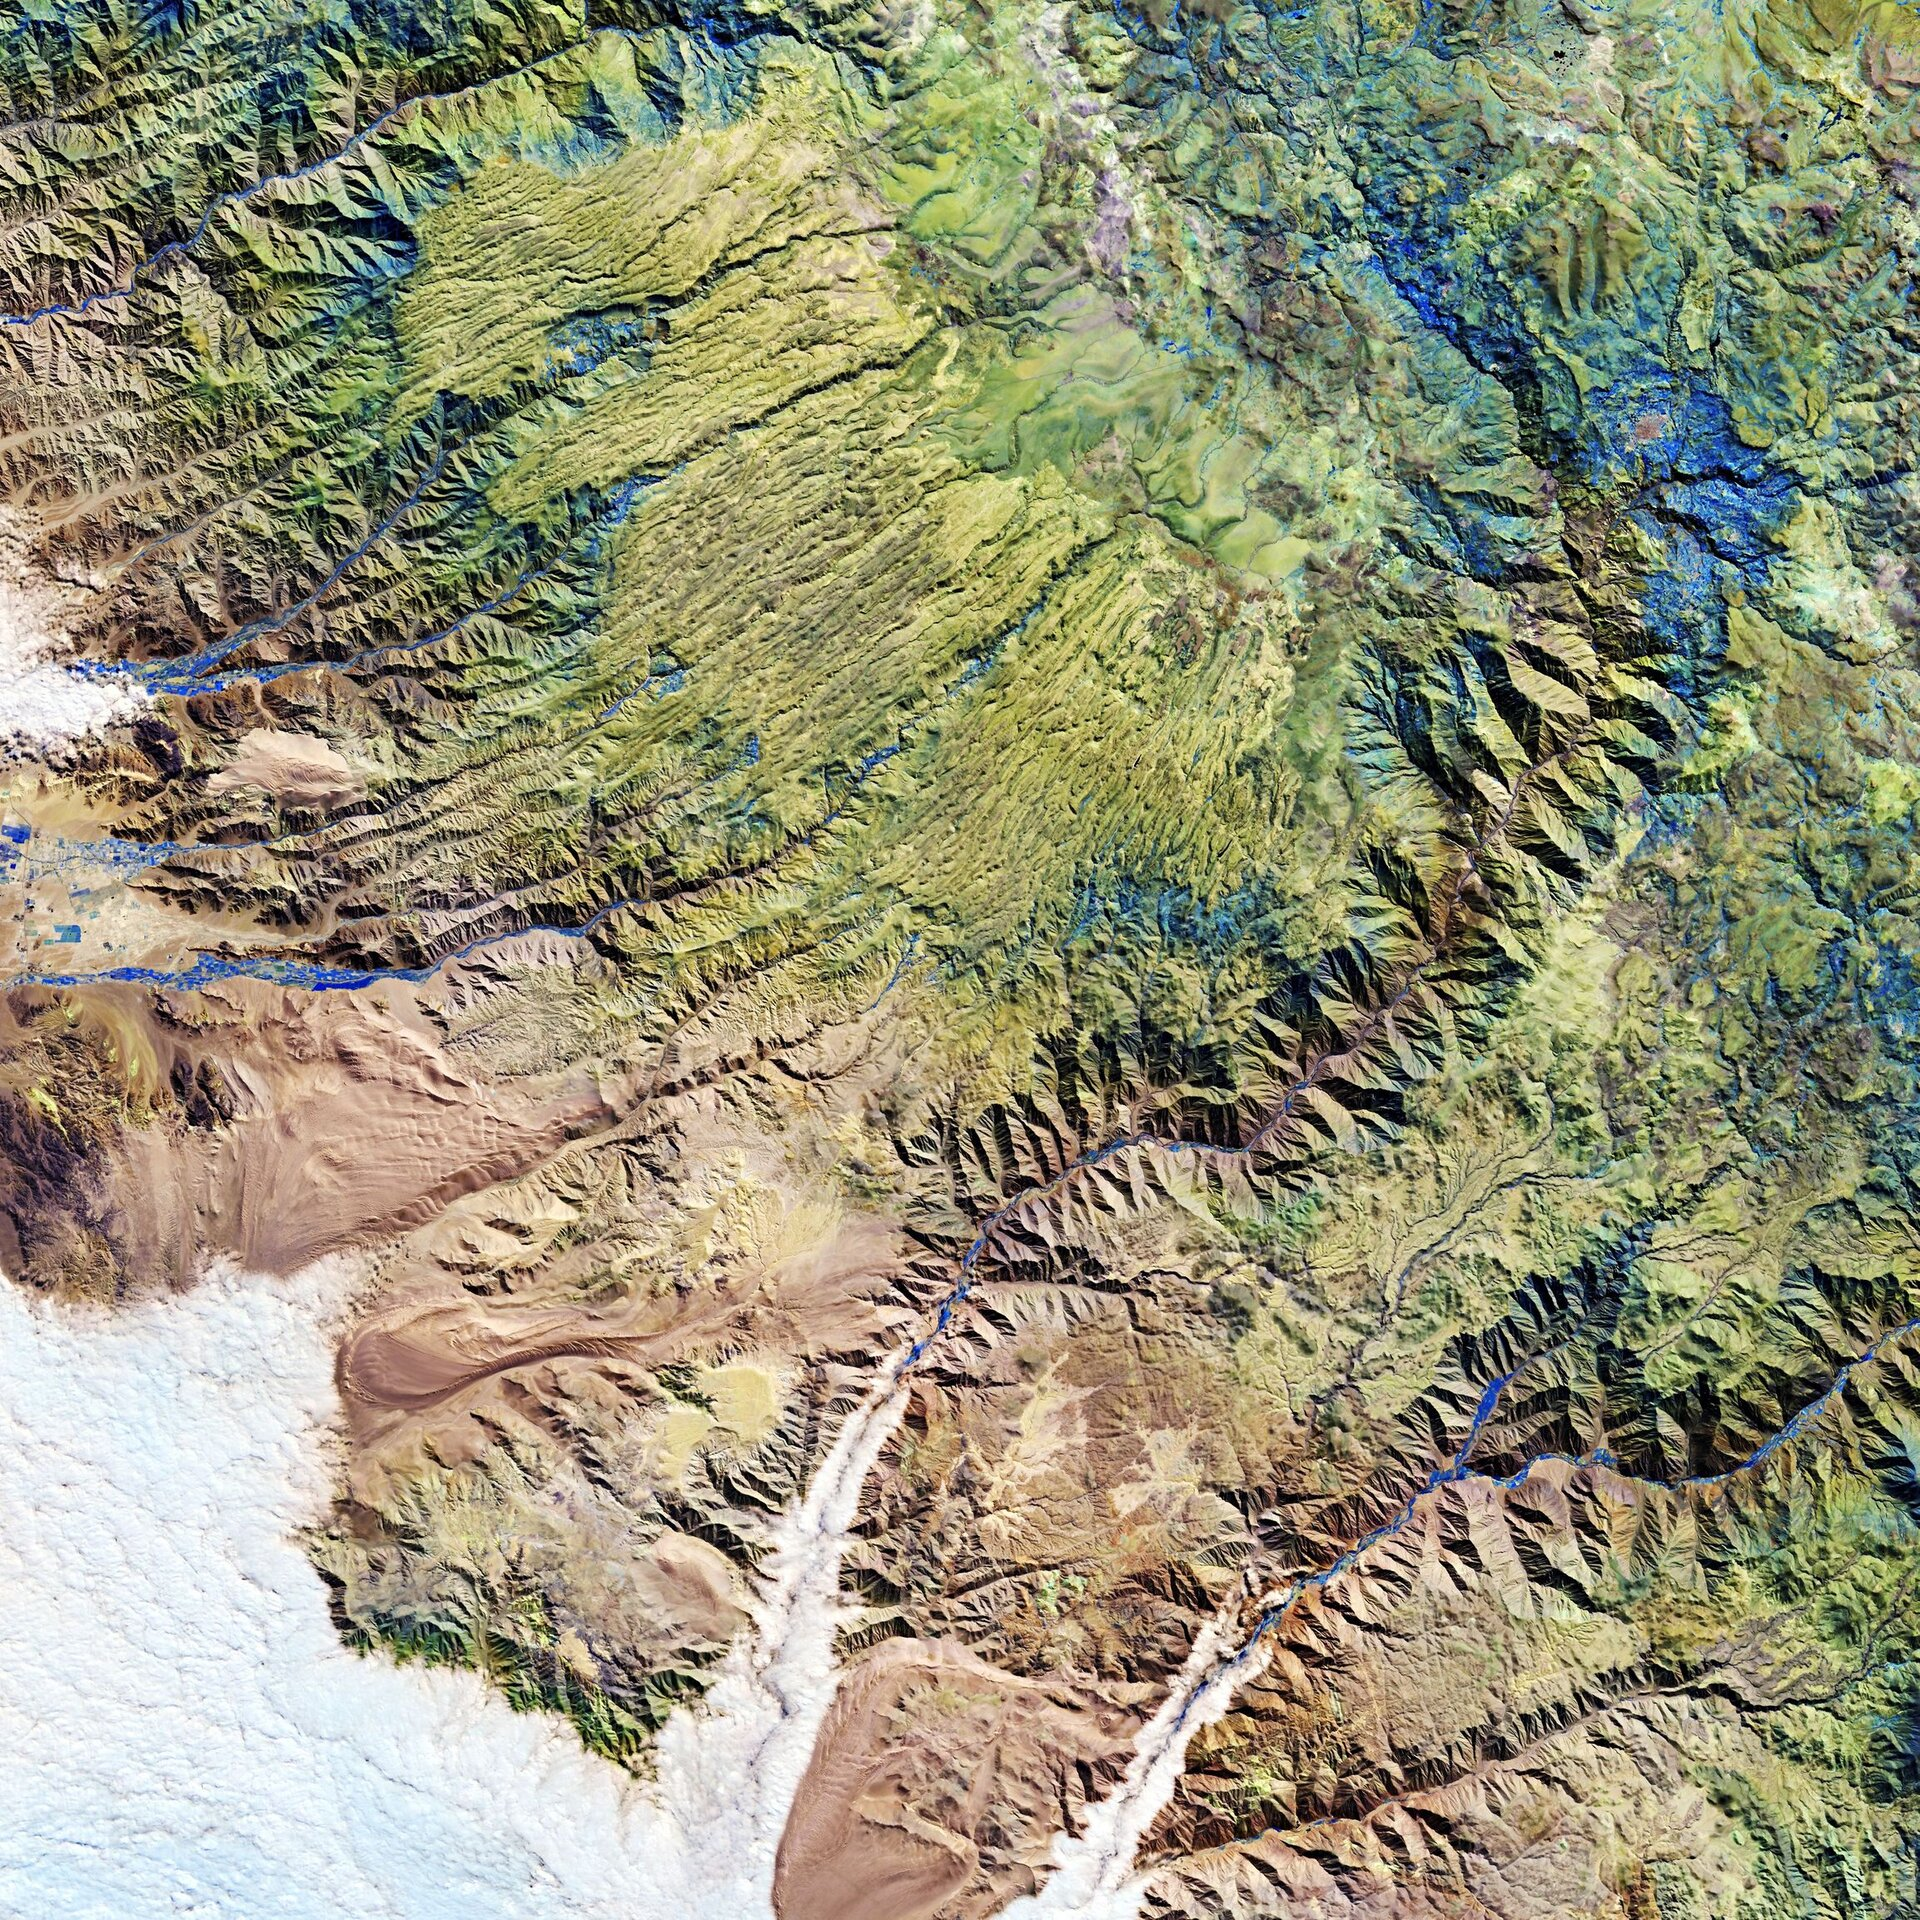 The Andes mountains, in southern Peru, are featured in this false-colour image captured by the Copernicus Sentinel-2 mission.